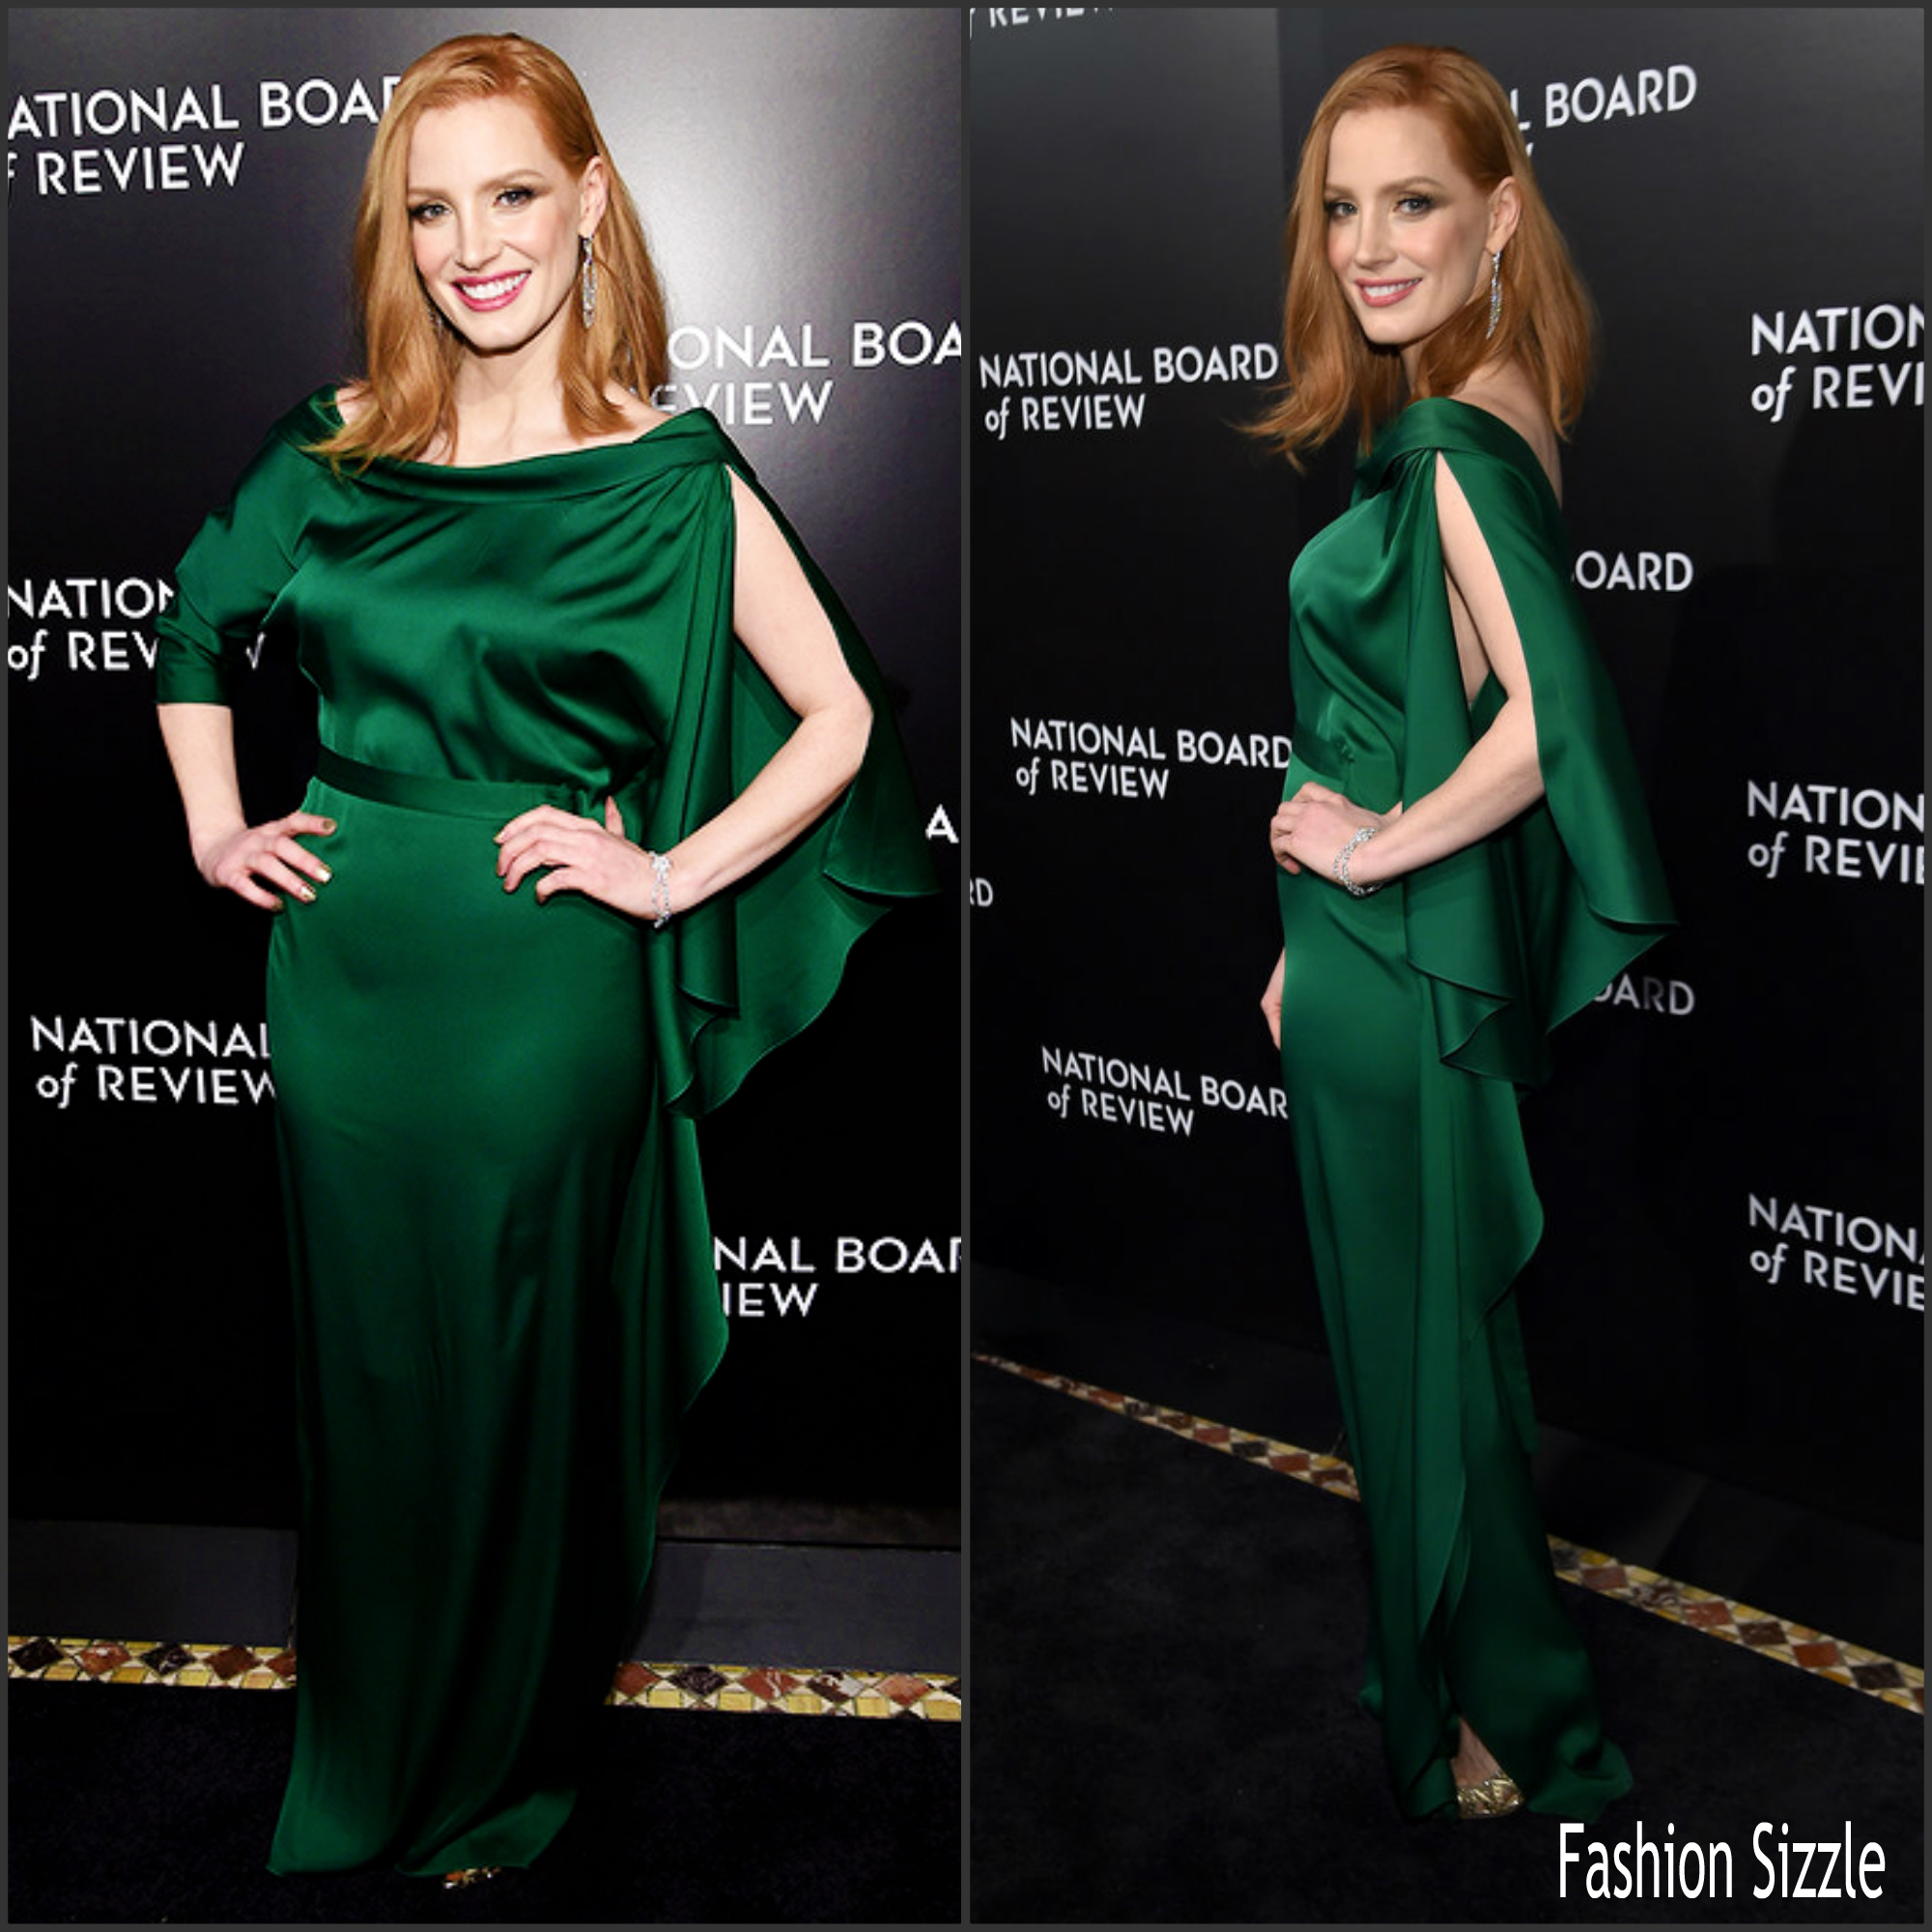 jessica-chastain-in-carl-kapp-2016-national-board-of-review-gala